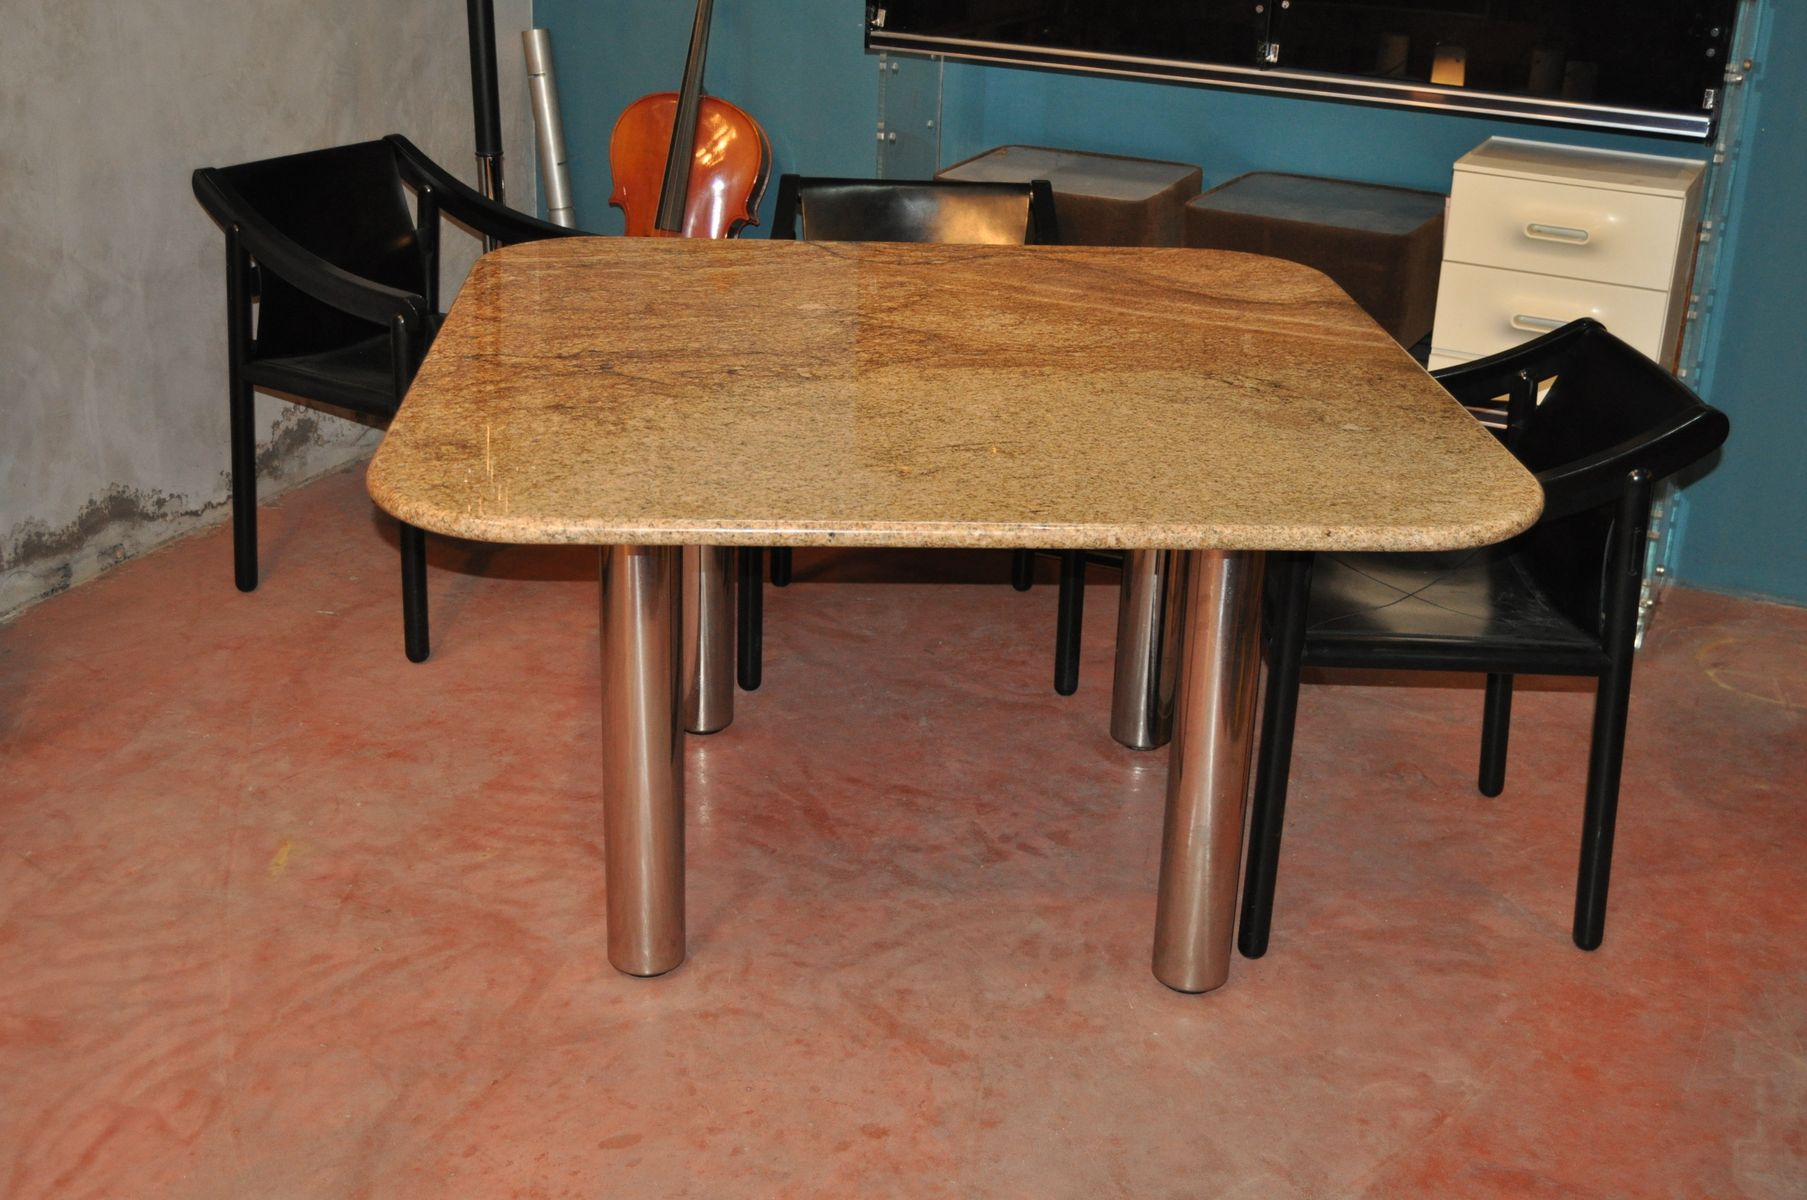 Vintage Marcuso Marble Dining Table from Zanotta for sale  : vintage marcuso marble dining table from zanotta 9 from www.pamono.com size 1807 x 1200 jpeg 203kB